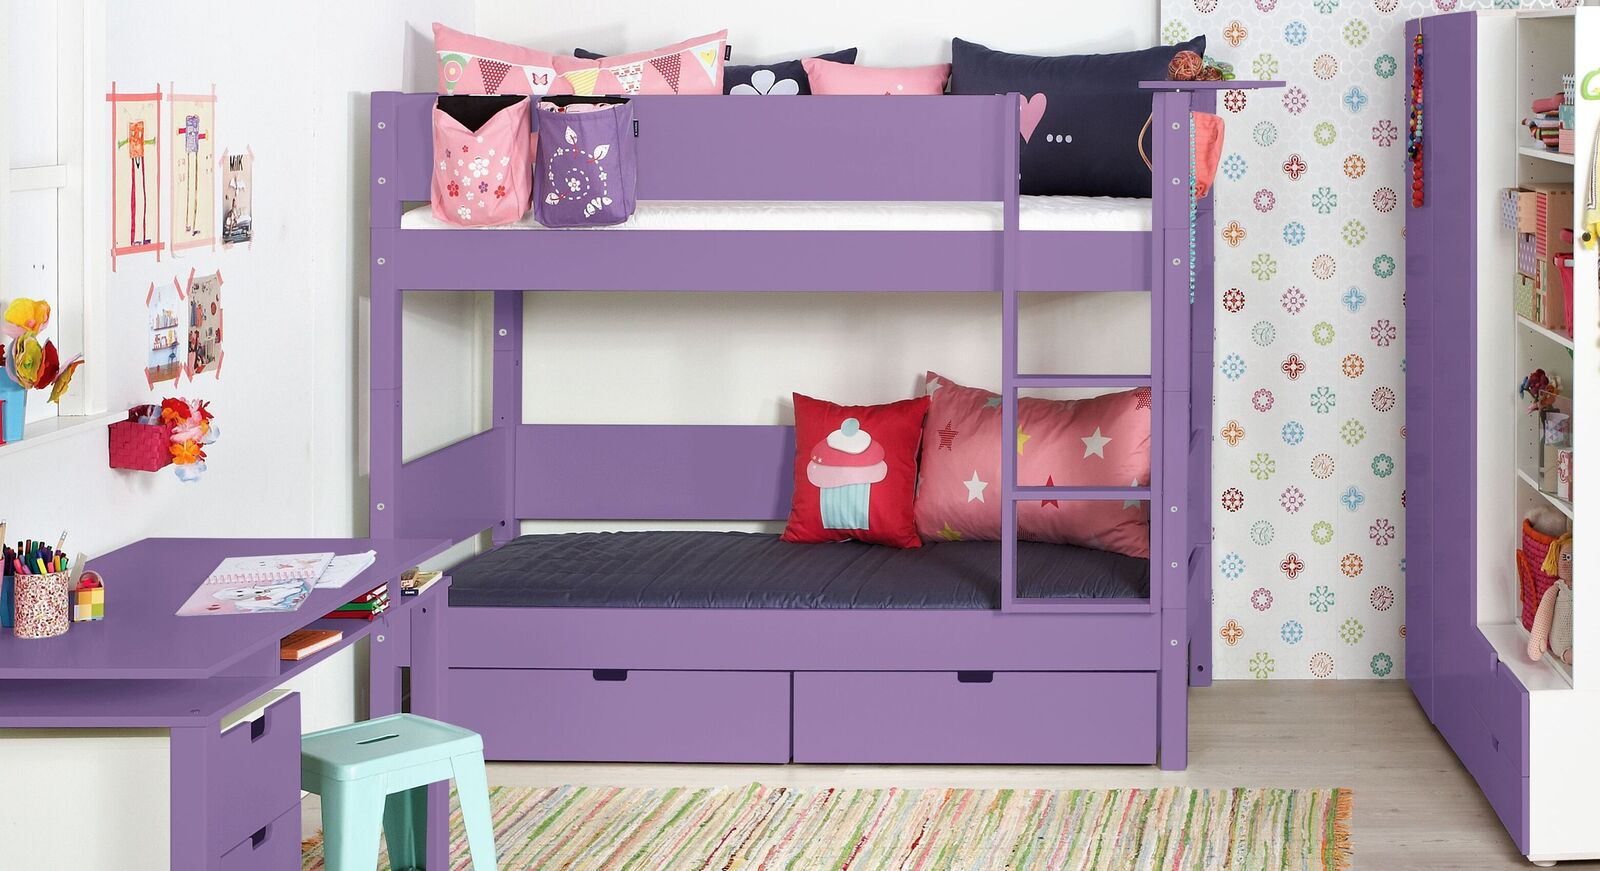 Modernes Etagenbett Kids Town Color in Violett mit Absturzsicherung